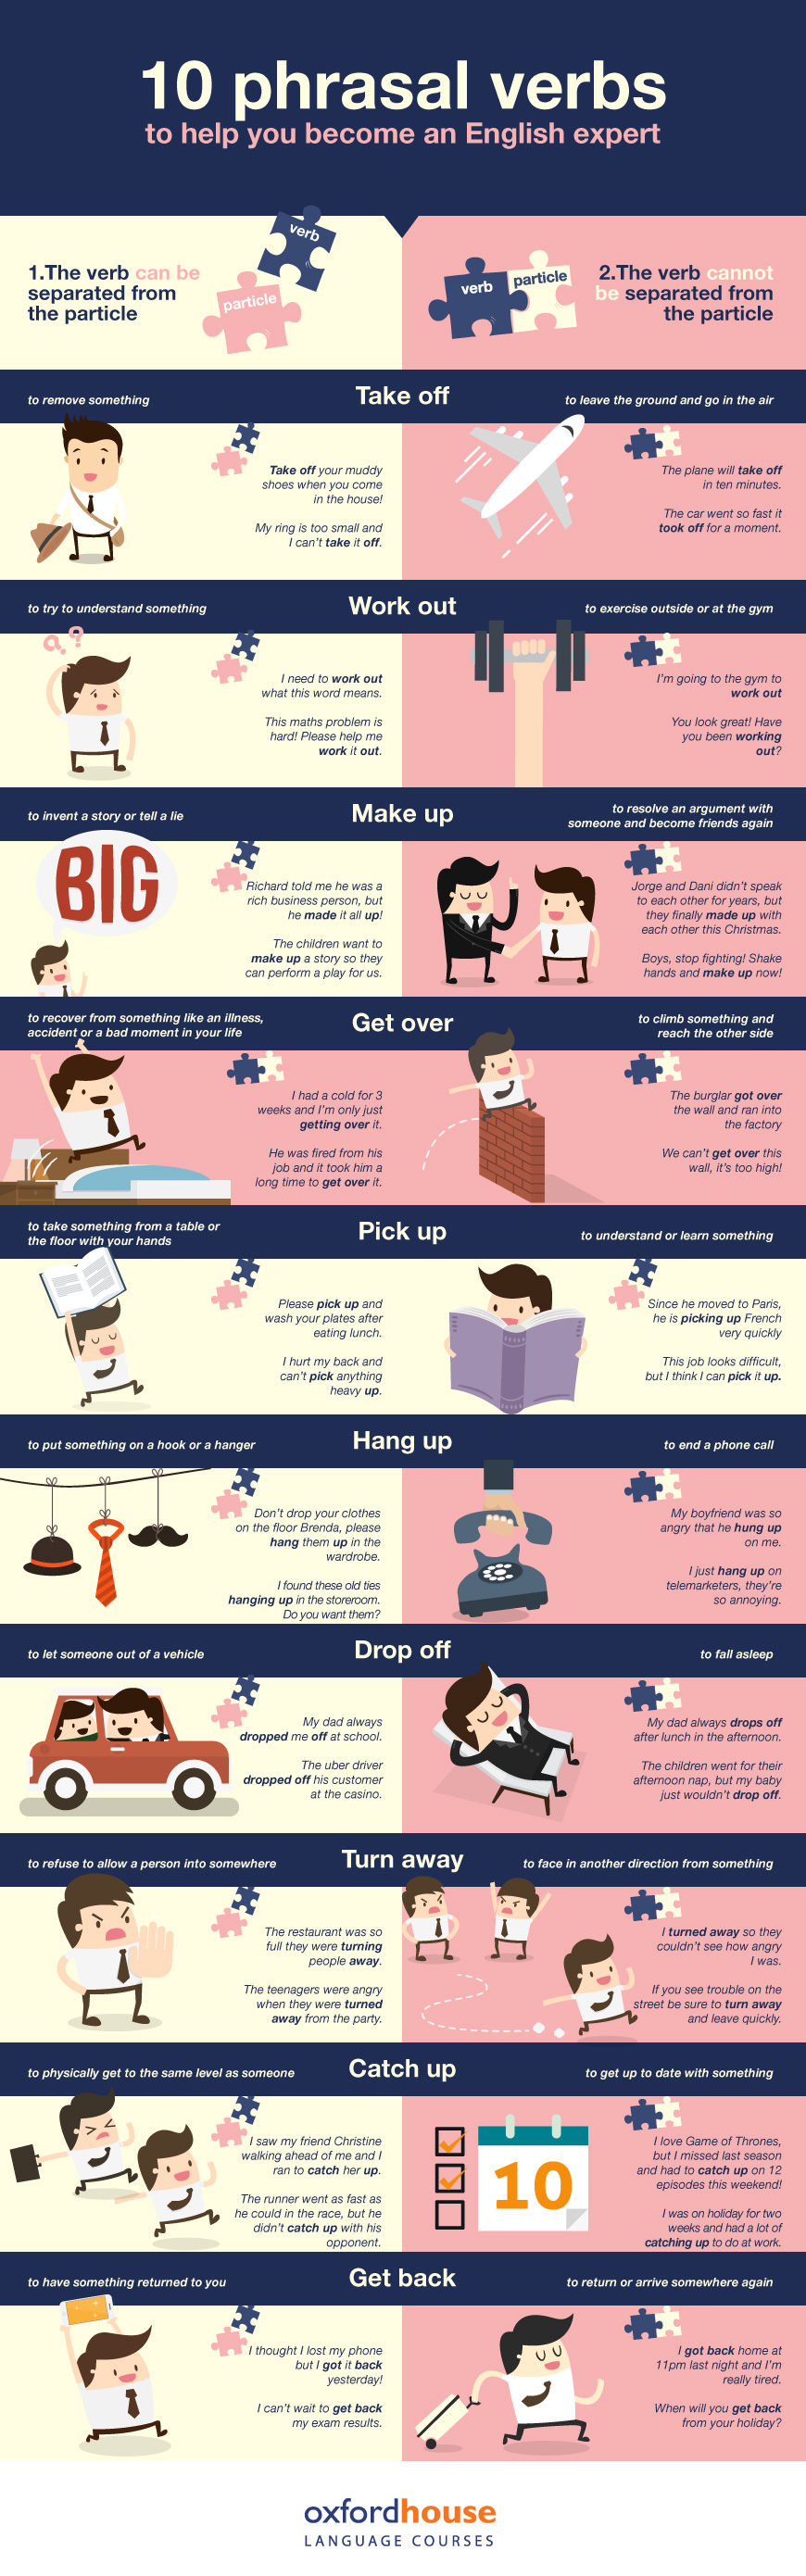 10 Phrasals Verbs to help you become an English Expert | Oxford House Barcelona